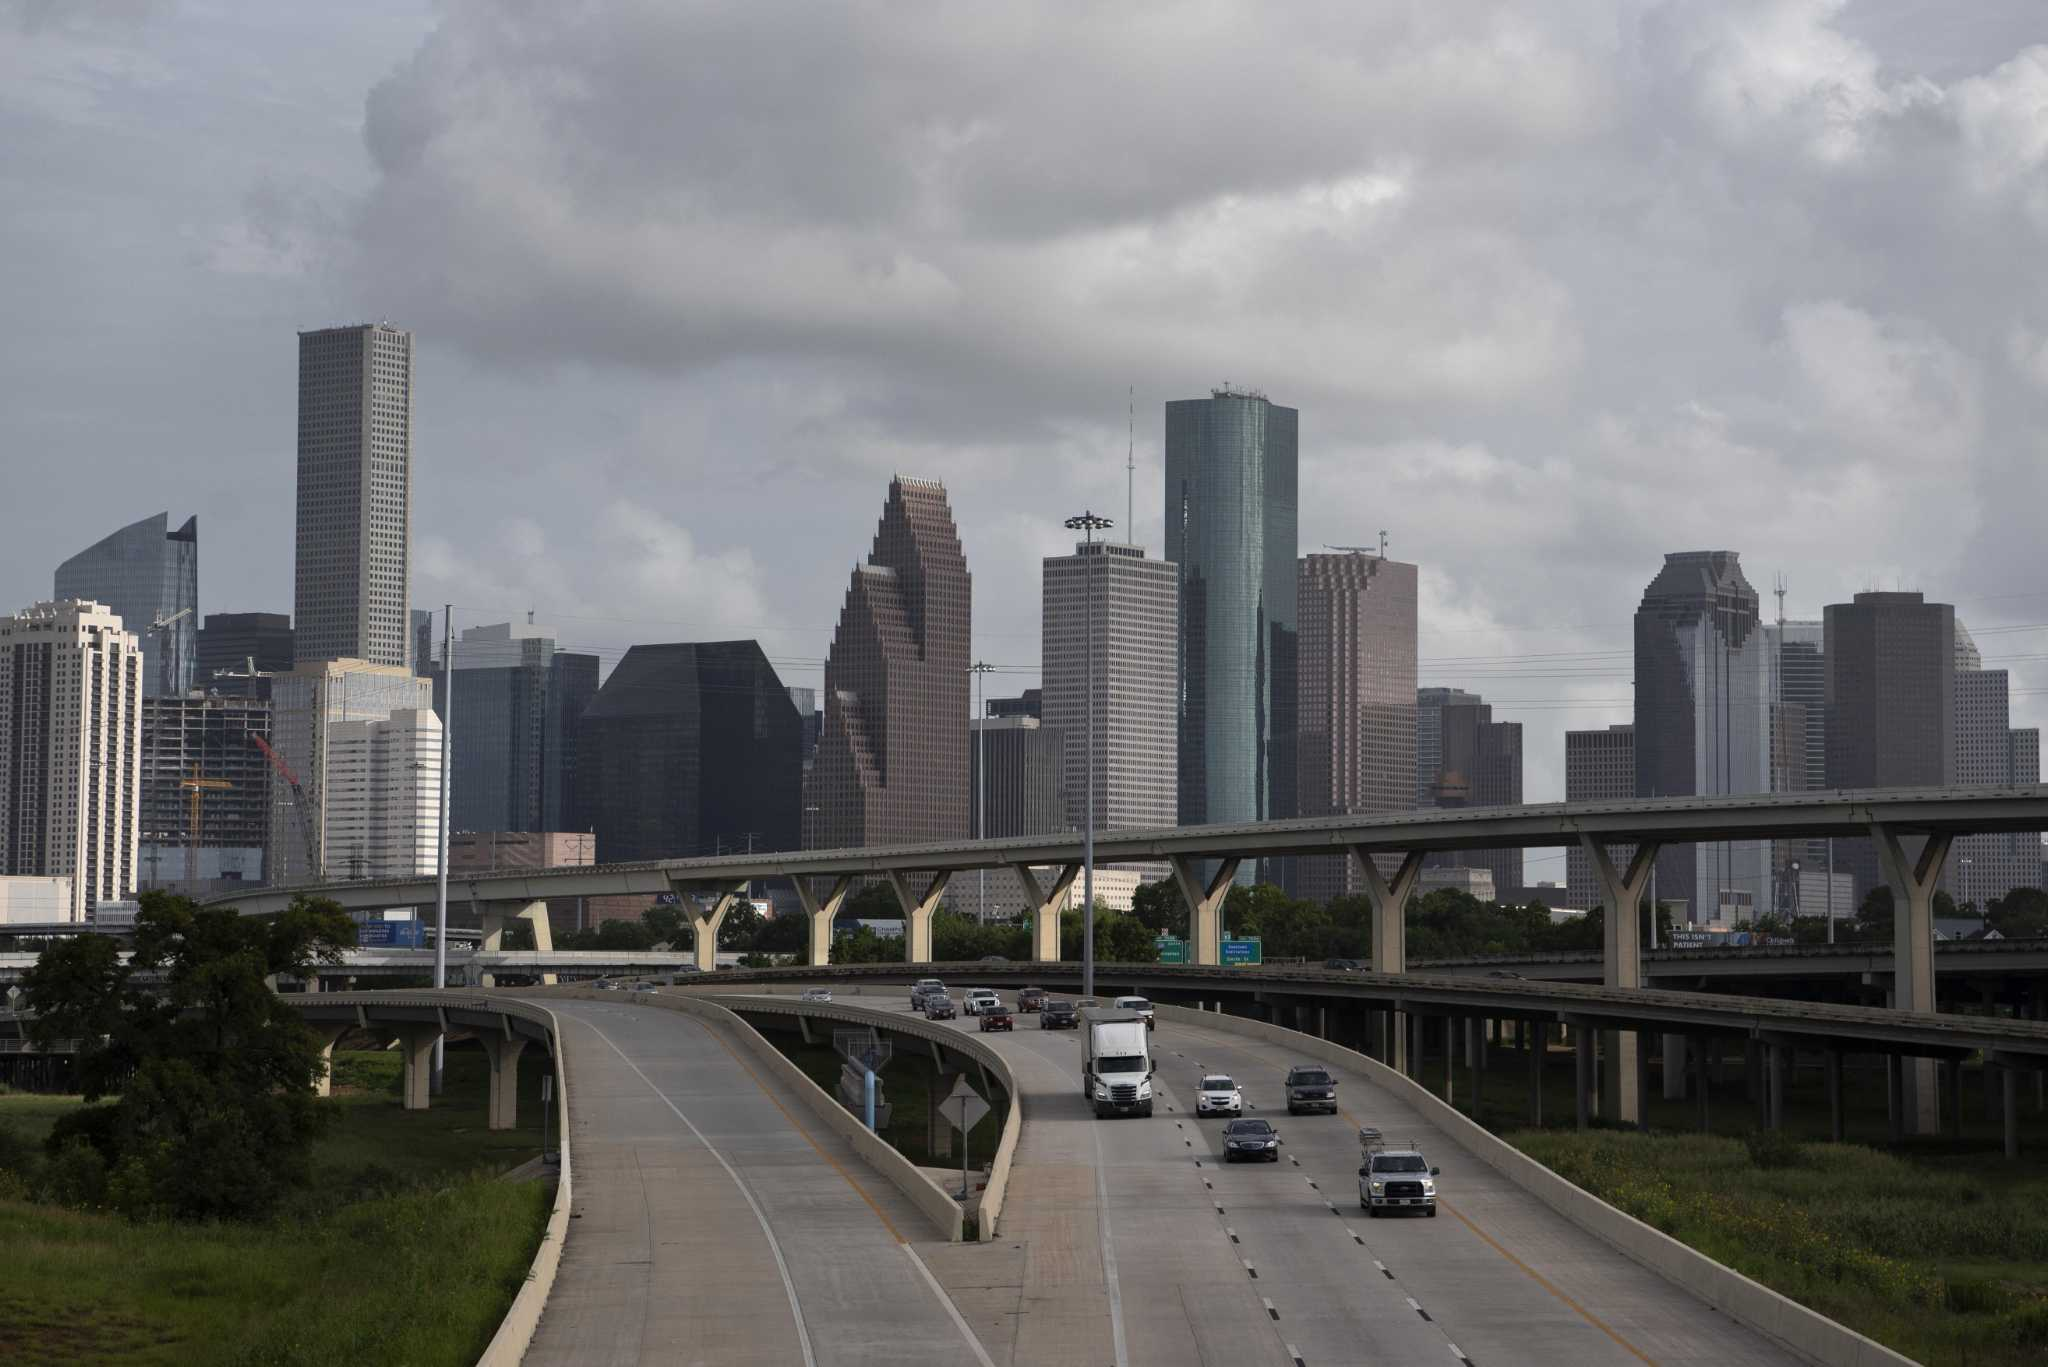 Light traffic on Houston's freeways. The question for businesses is when and if things get back to normal.